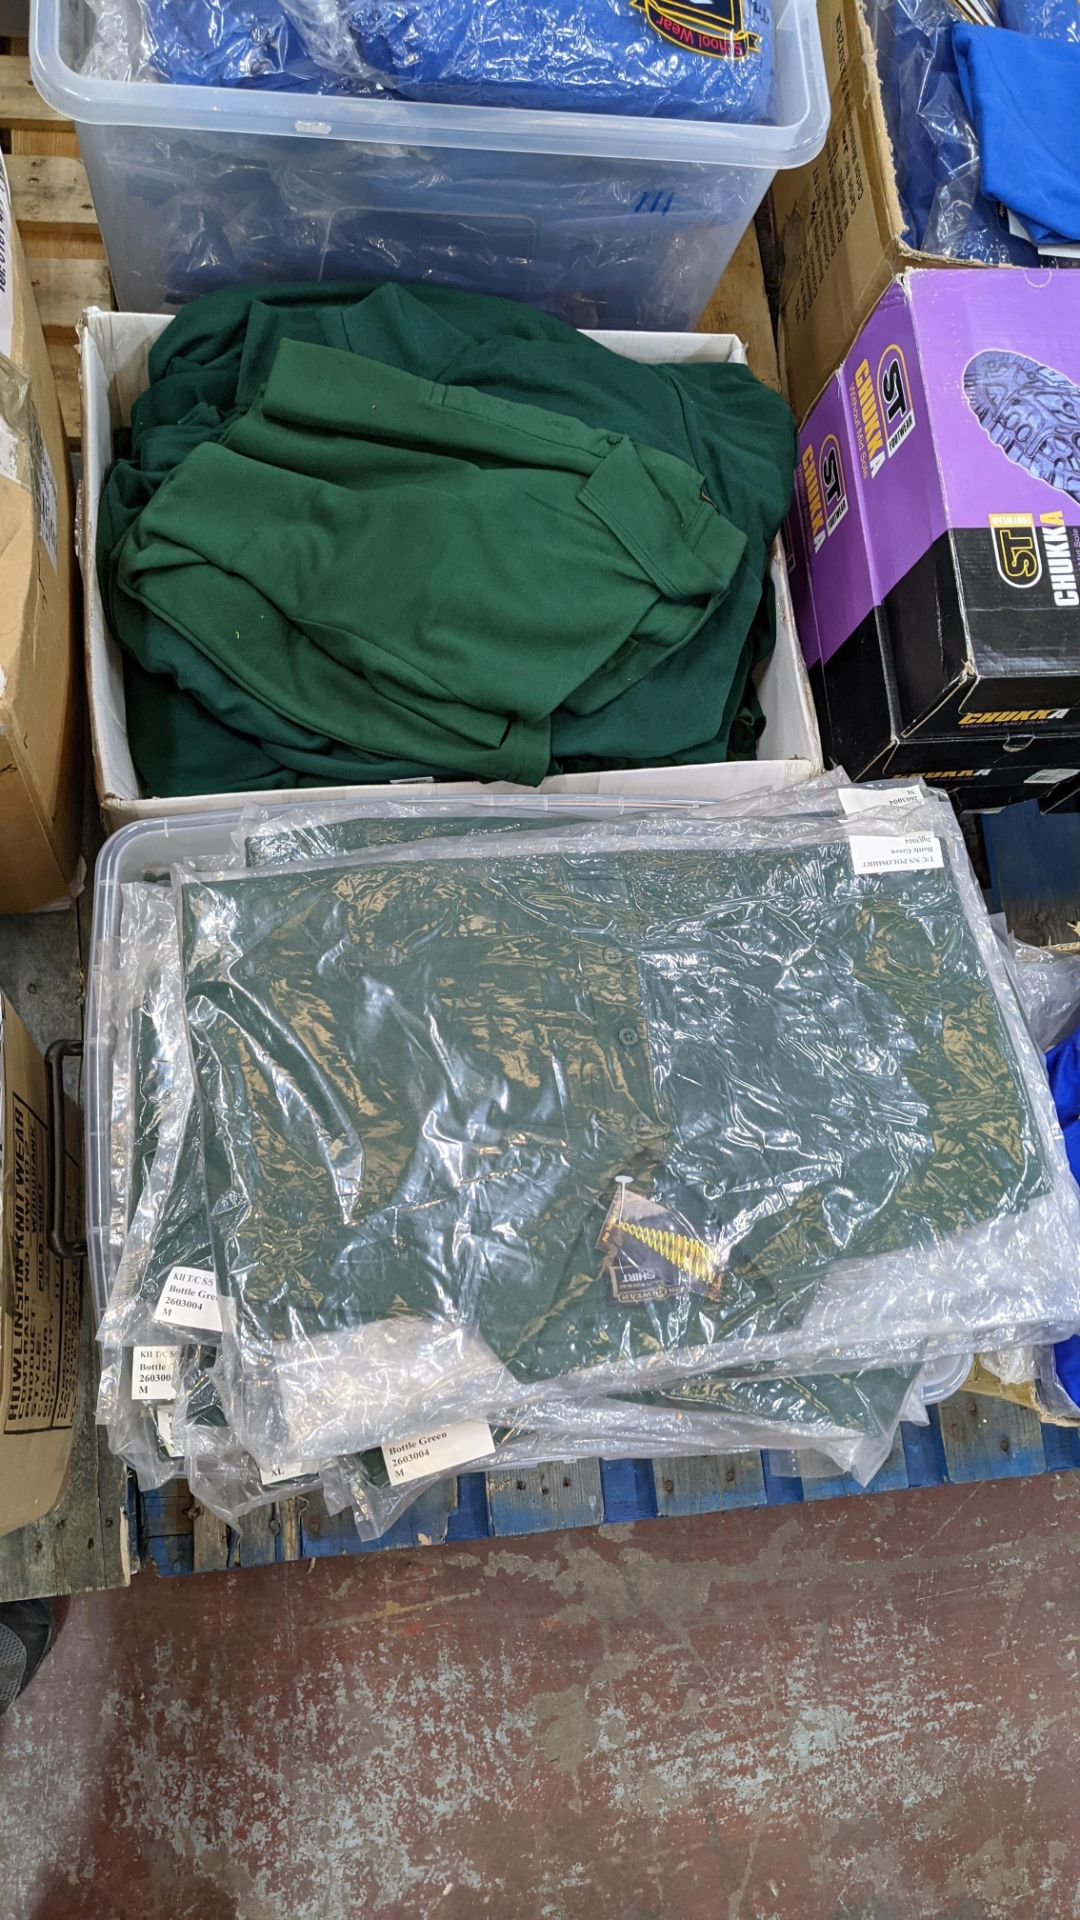 Approx 80 off green polo shirts & sweatshirts - the contents of 2 boxes/crates. NB boxes/crates exc - Image 2 of 6